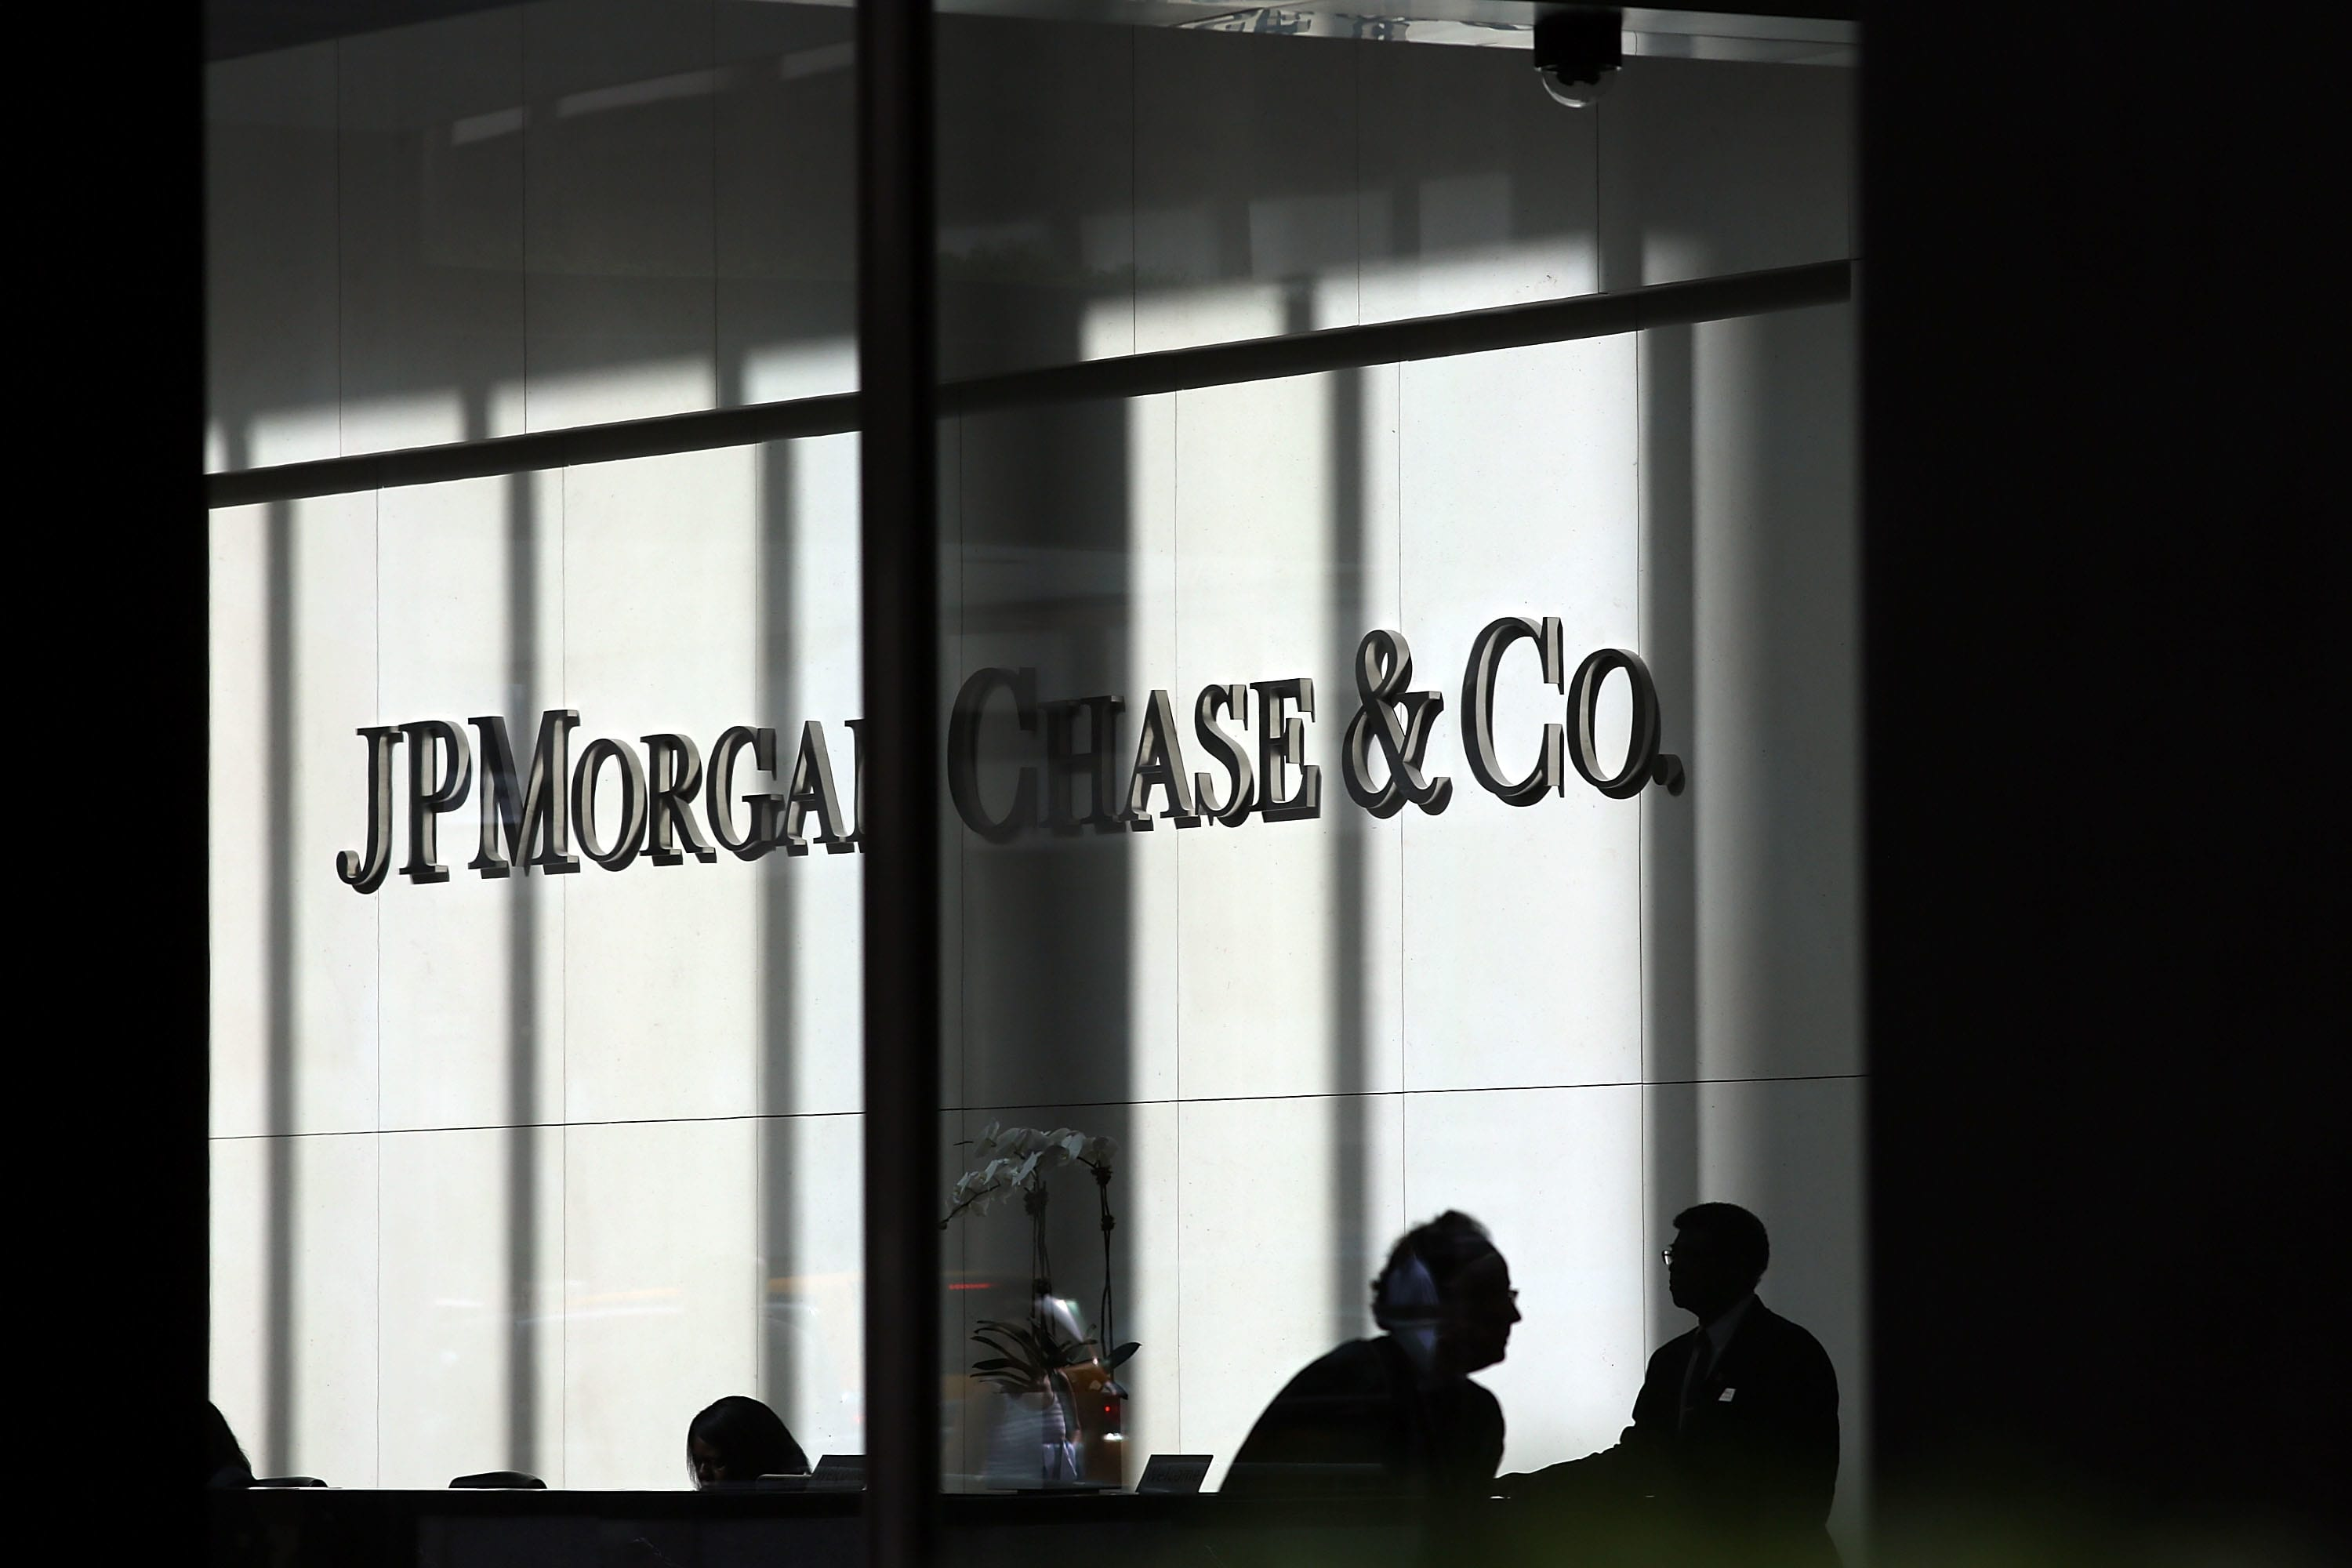 JP Morgan cuts ties with OxyContin maker Purdue Pharma